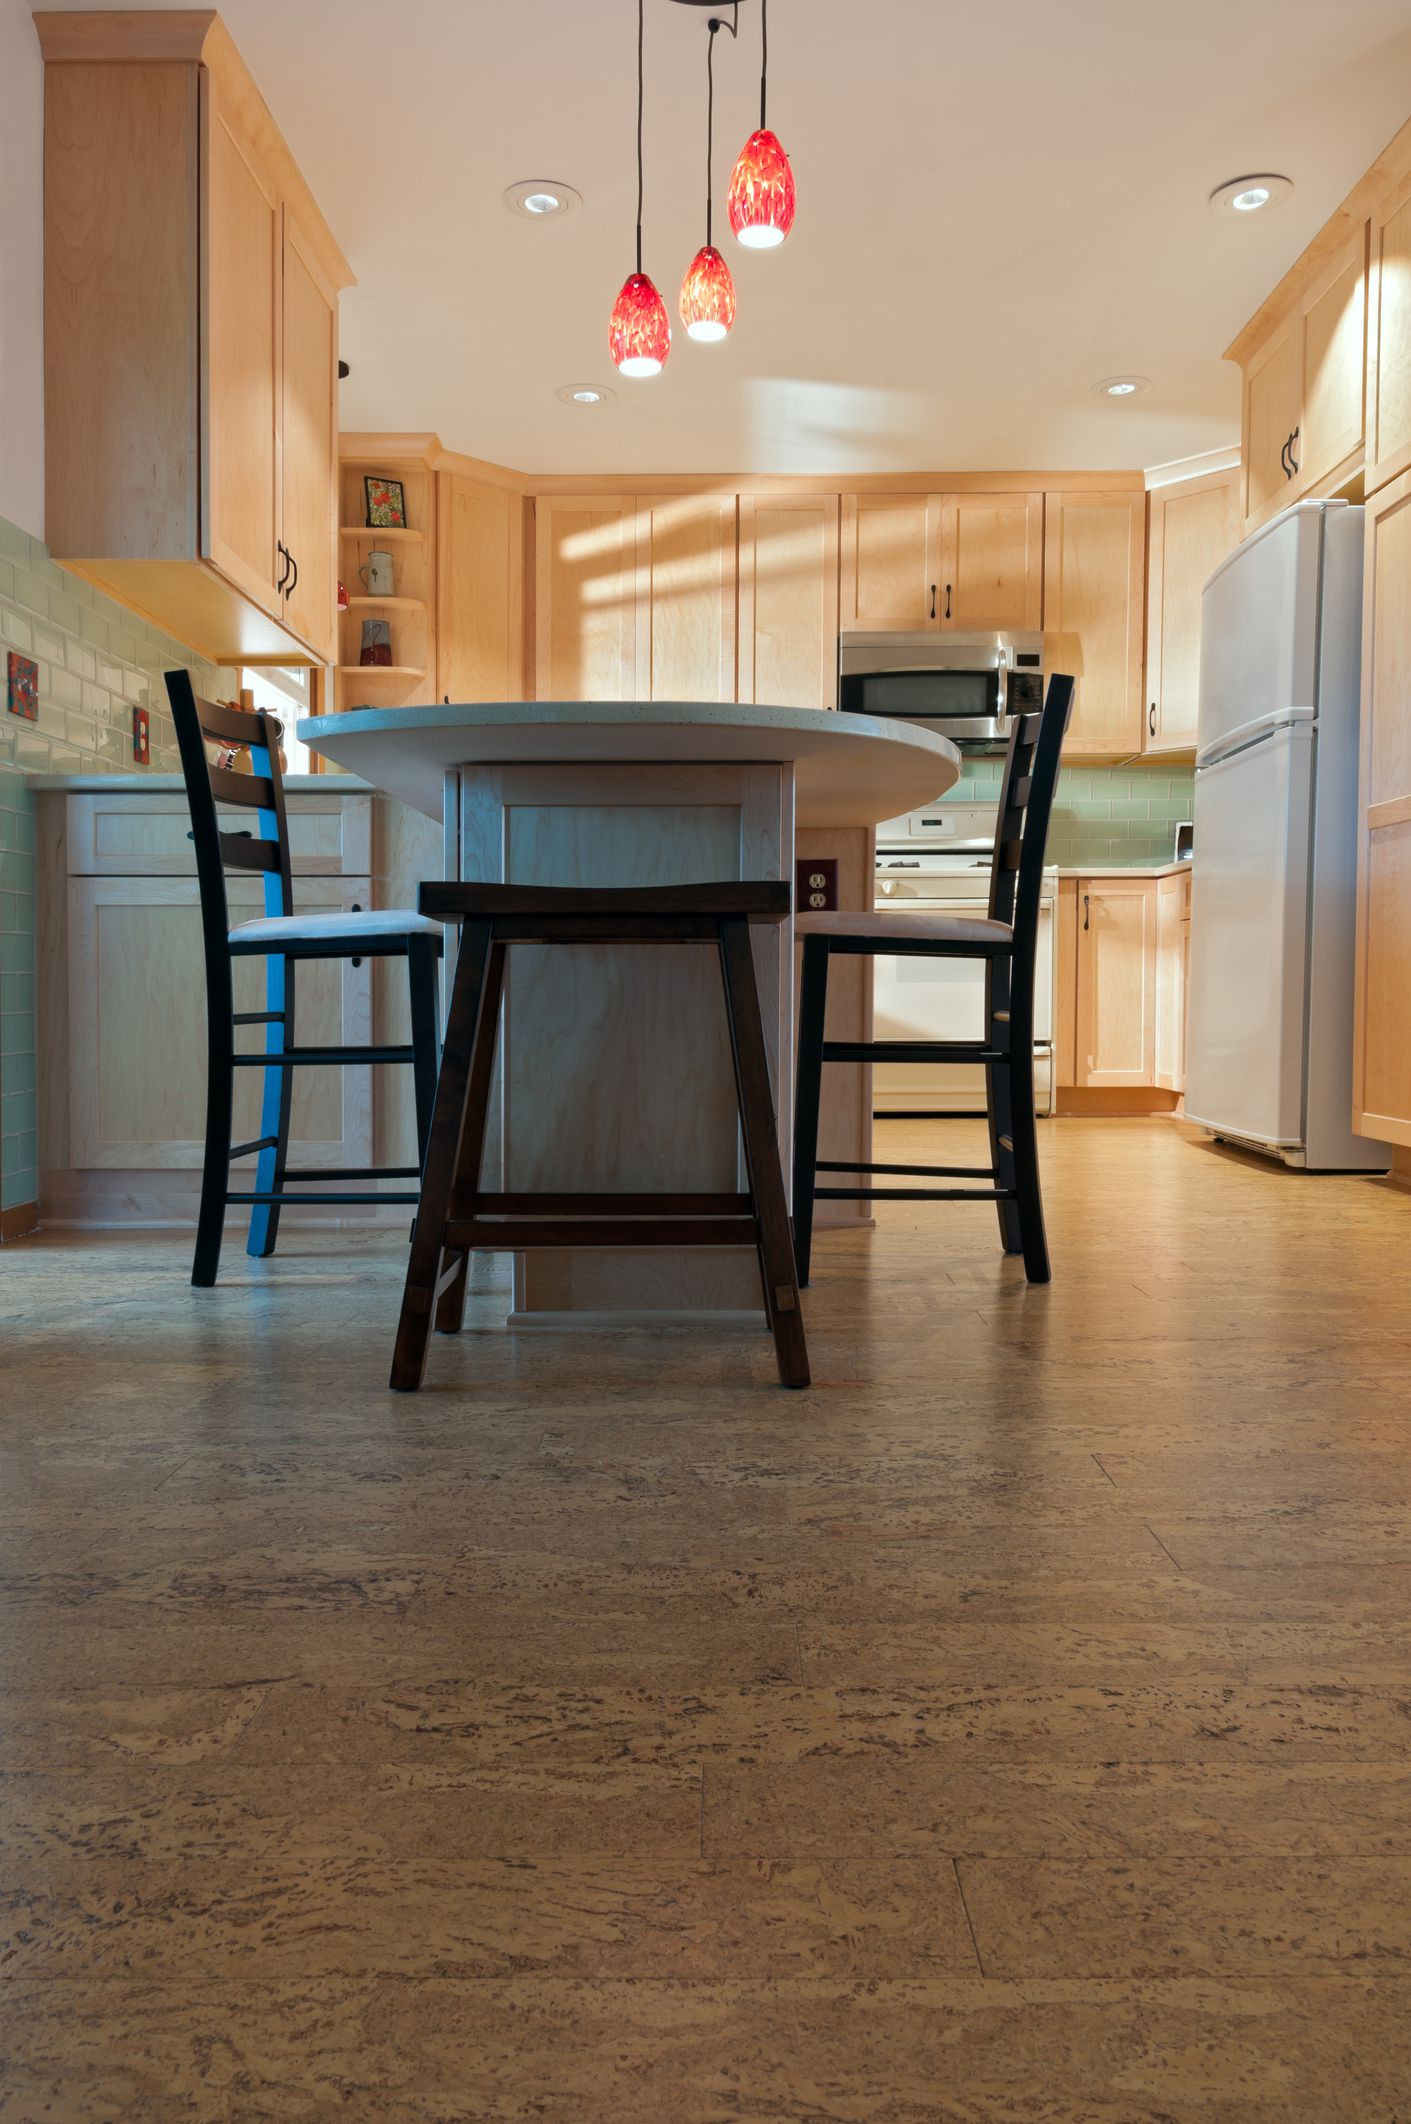 wholesale hardwood flooring nashville of 4 good and inexpensive kitchen flooring options intended for gettyimages 510156783 5a85a496875db90036941dbb